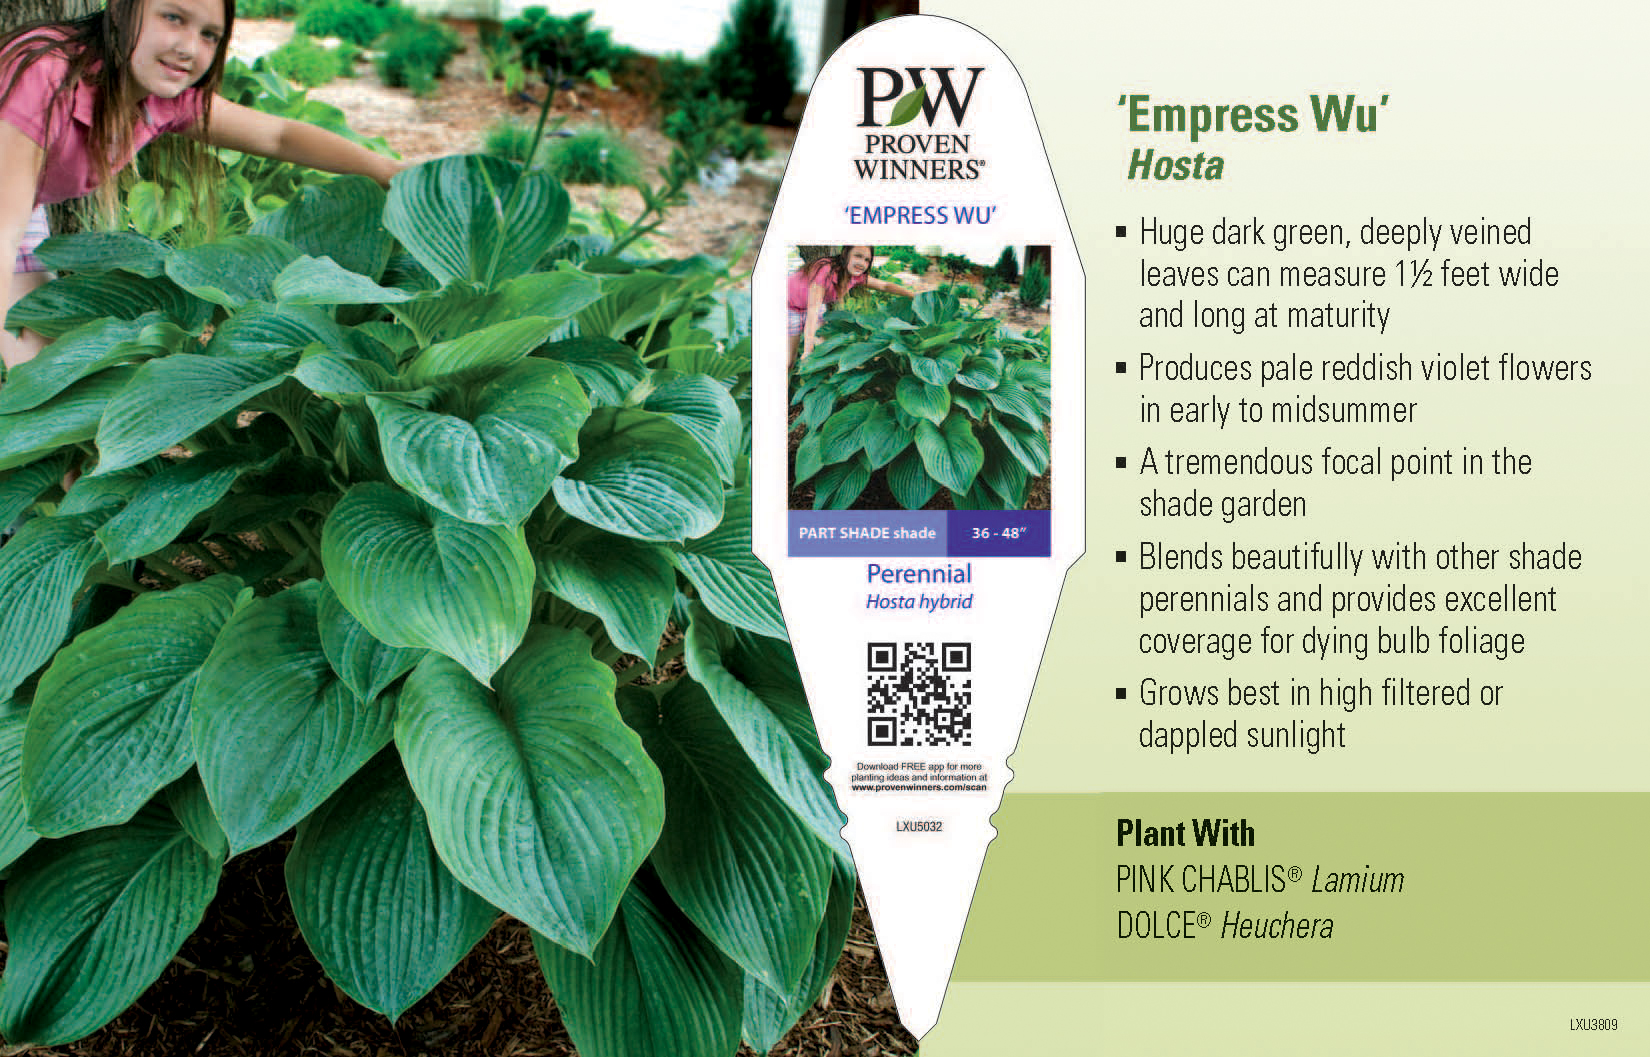 39 empress wu 39 hosta 11x7 variety benchcard proven winners. Black Bedroom Furniture Sets. Home Design Ideas